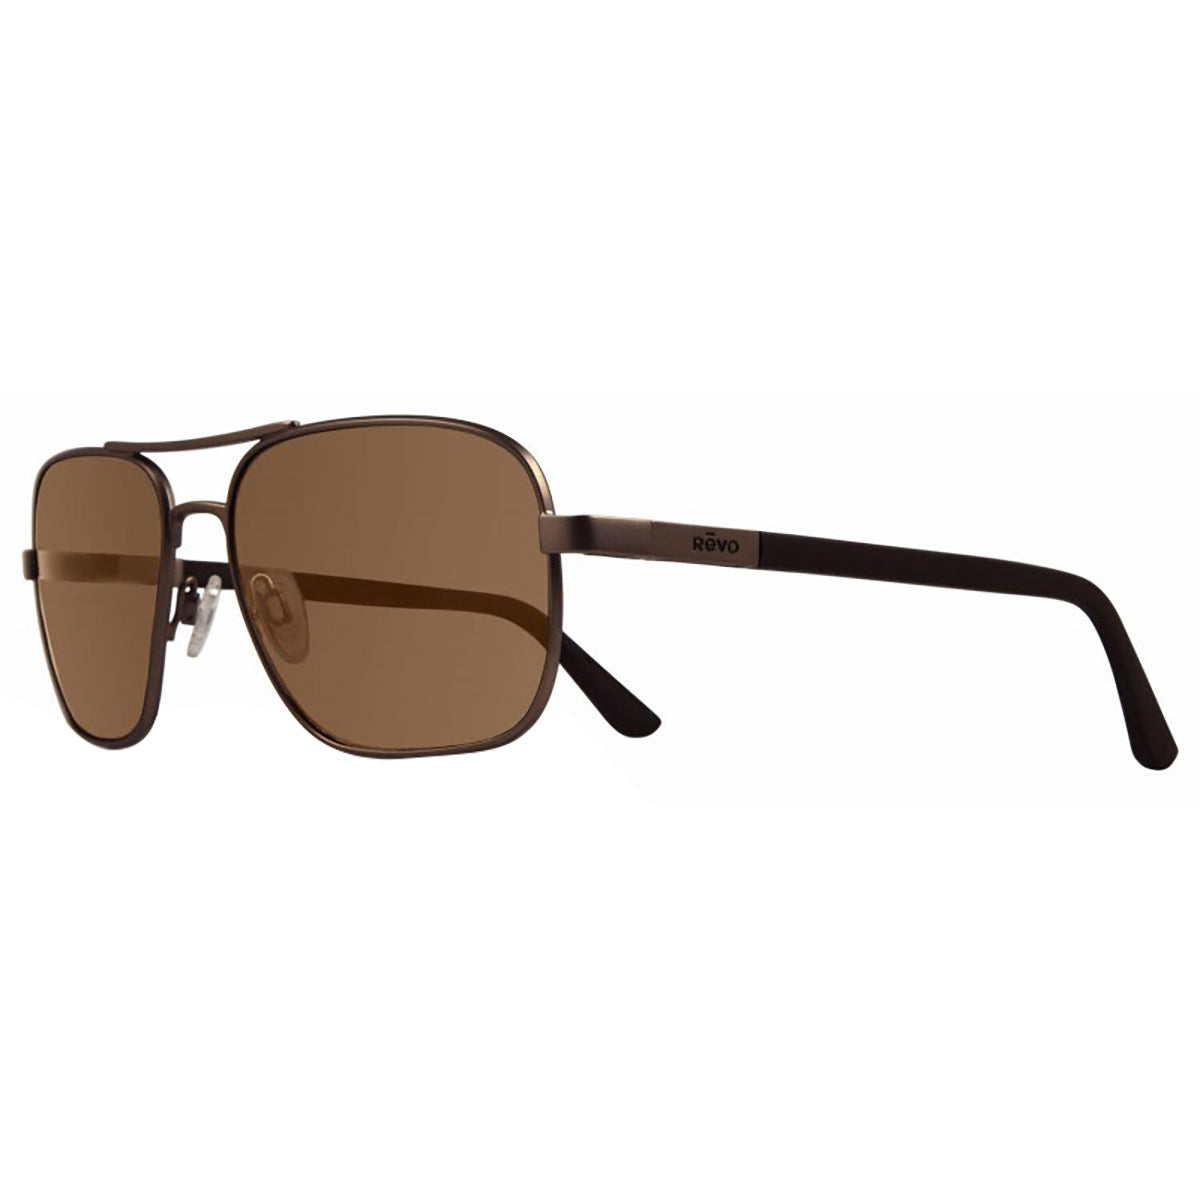 Revo Freeman Men's Lifestyle Polarized Sunglasses (BRAND NEW)